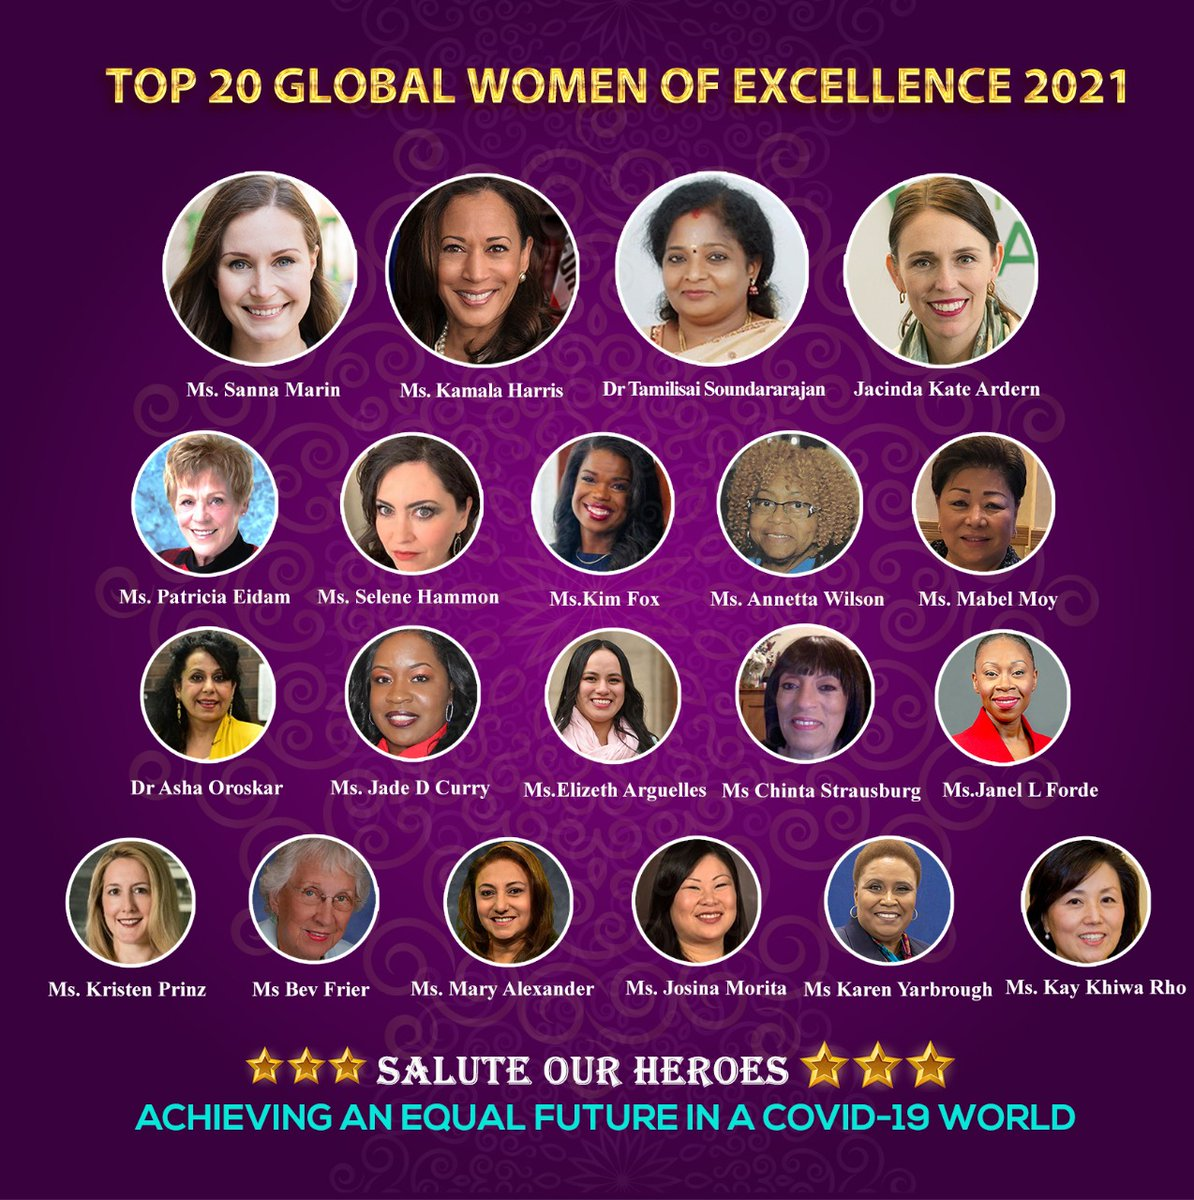 I am Greatly Pleased to be honored among Top 20 Global #women of Excellence.I Thank Multi Ethnic Advisory Task Force ,#Illinois Headed by #USA Congressman Danny K Davis.I hope this recognition will inspire others in creating a sustainable, Peaceful, Inclusive & Equitable #India.